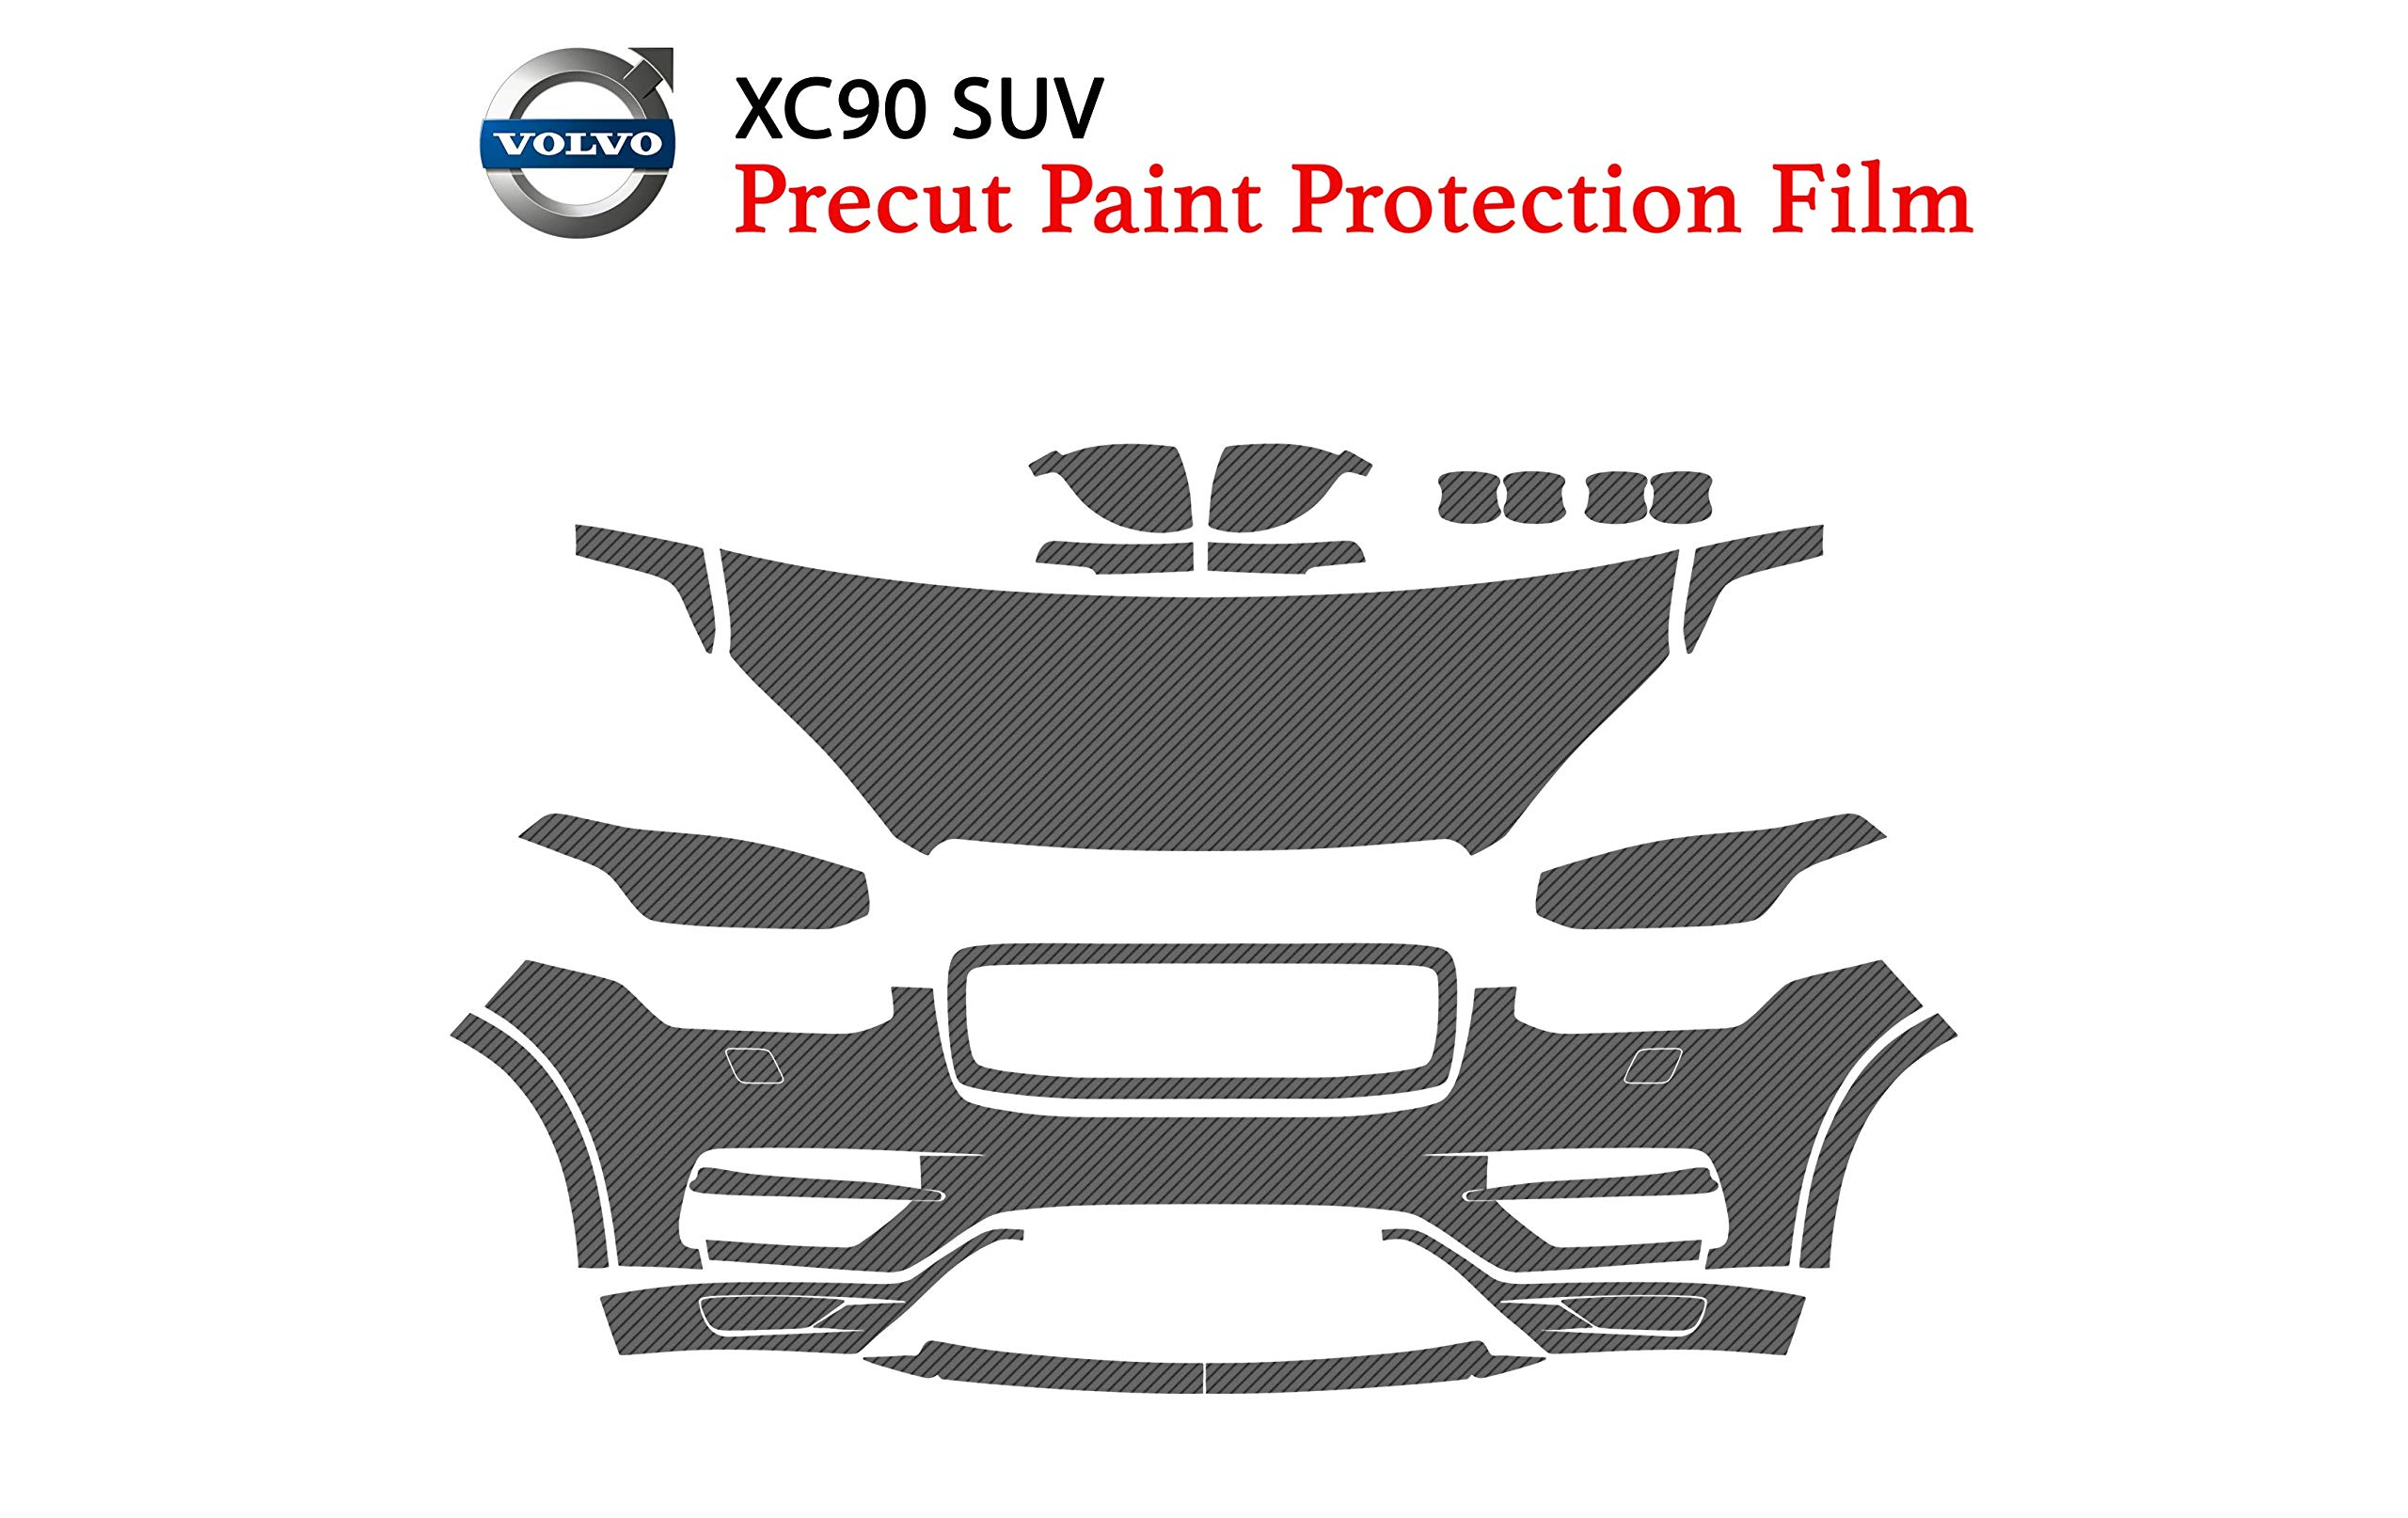 The Online Liquidator Precut Clear Bra Paint Protection Film Kit fits Volvo XC90 SUV 2016-2019 - Full Front Vinyl Wrap Surface Safeguard Armor Cover